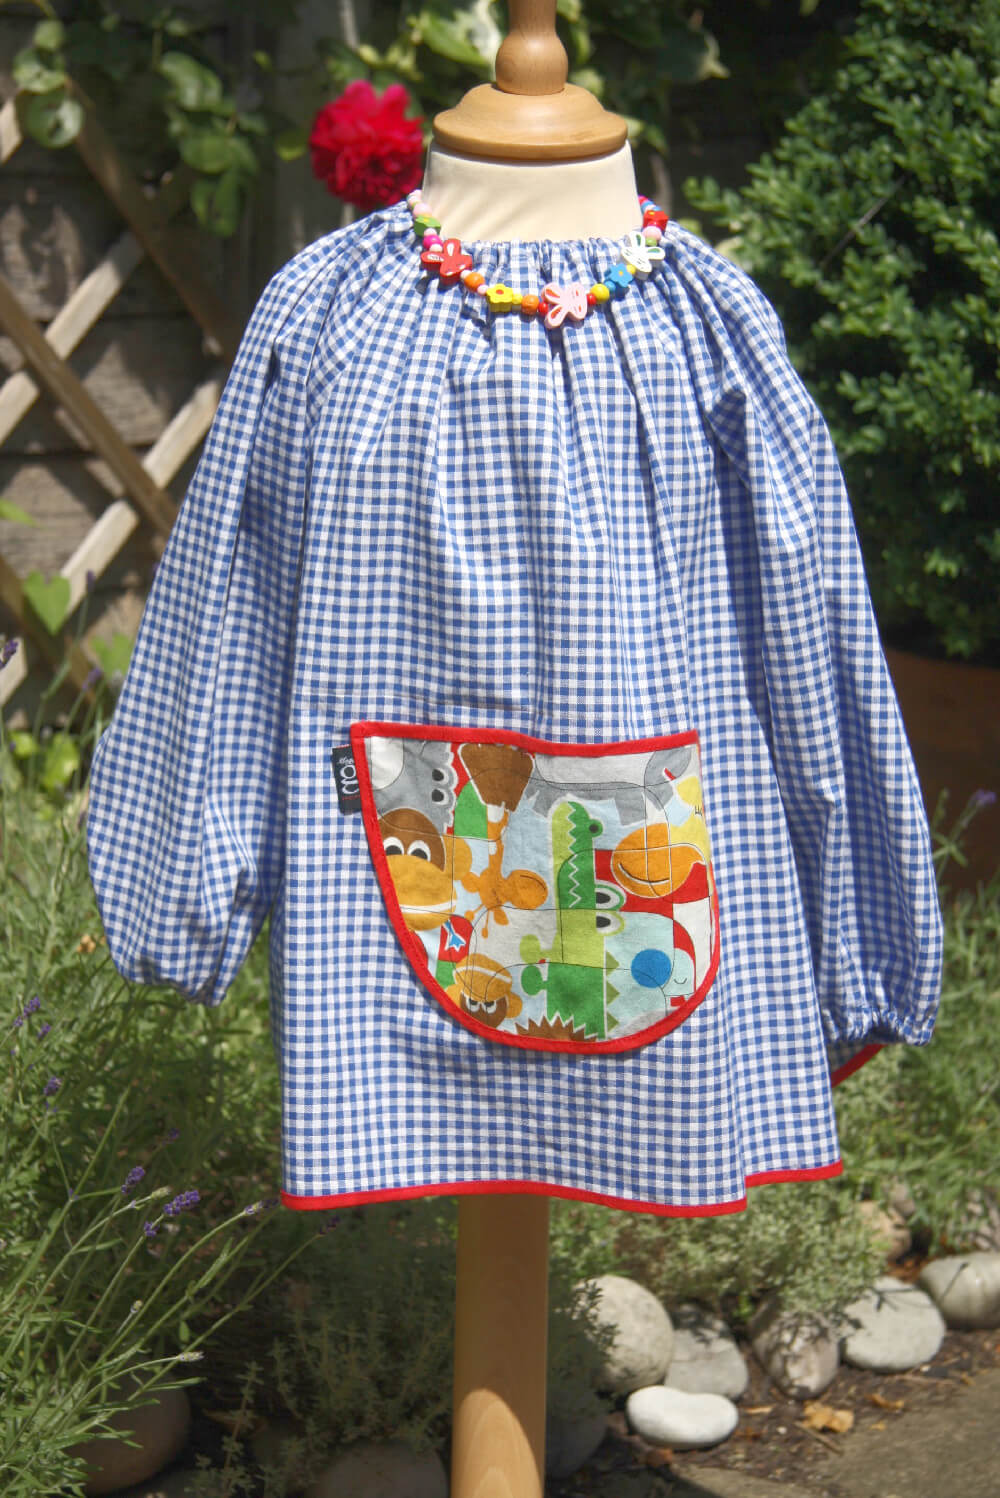 Traditional children's blue gingham smock, Jungle Fever pocket